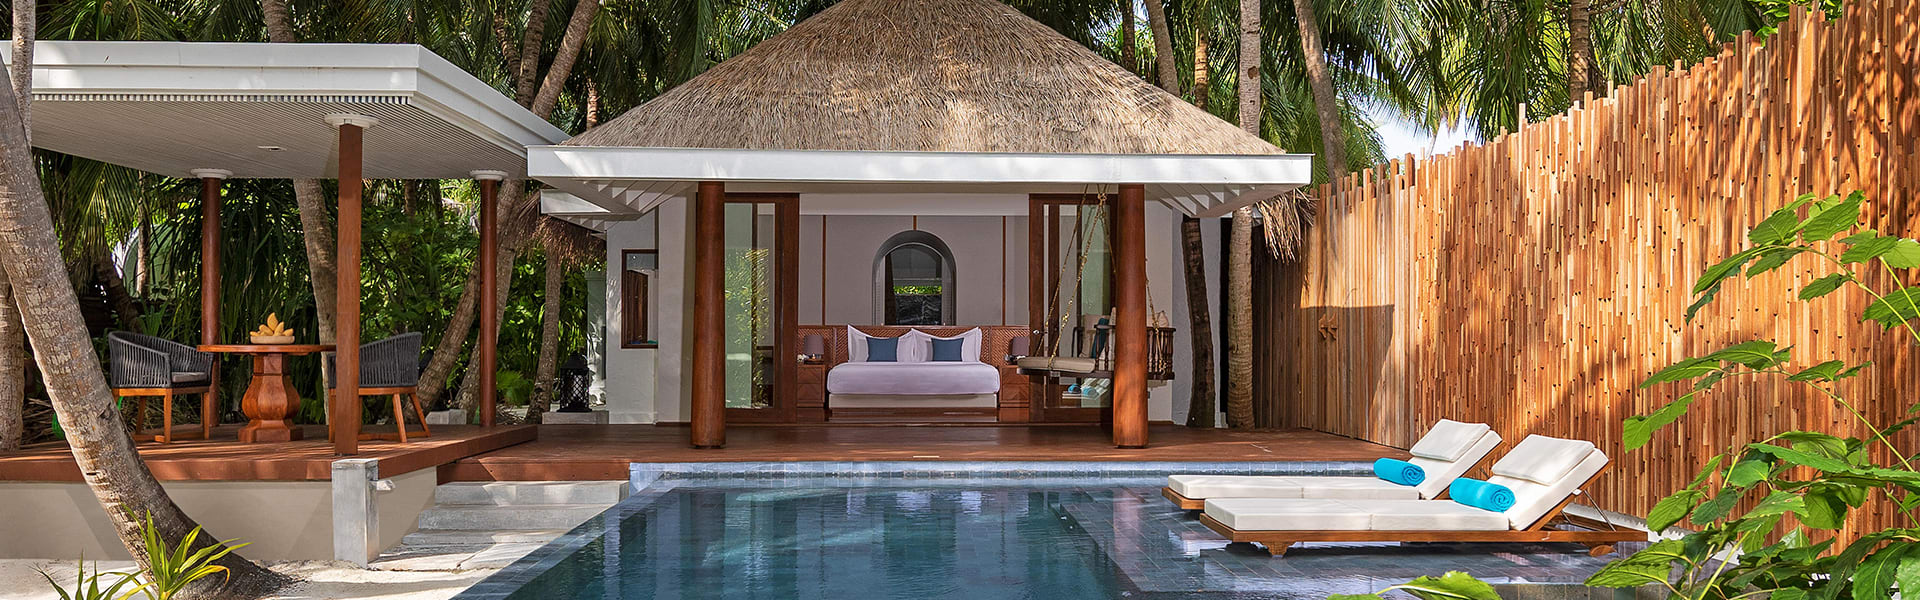 anantara kihavah four bedroom beach pool residence master bedroom villa 1920x600 - Outdoor Furnitures | Luxury Resort